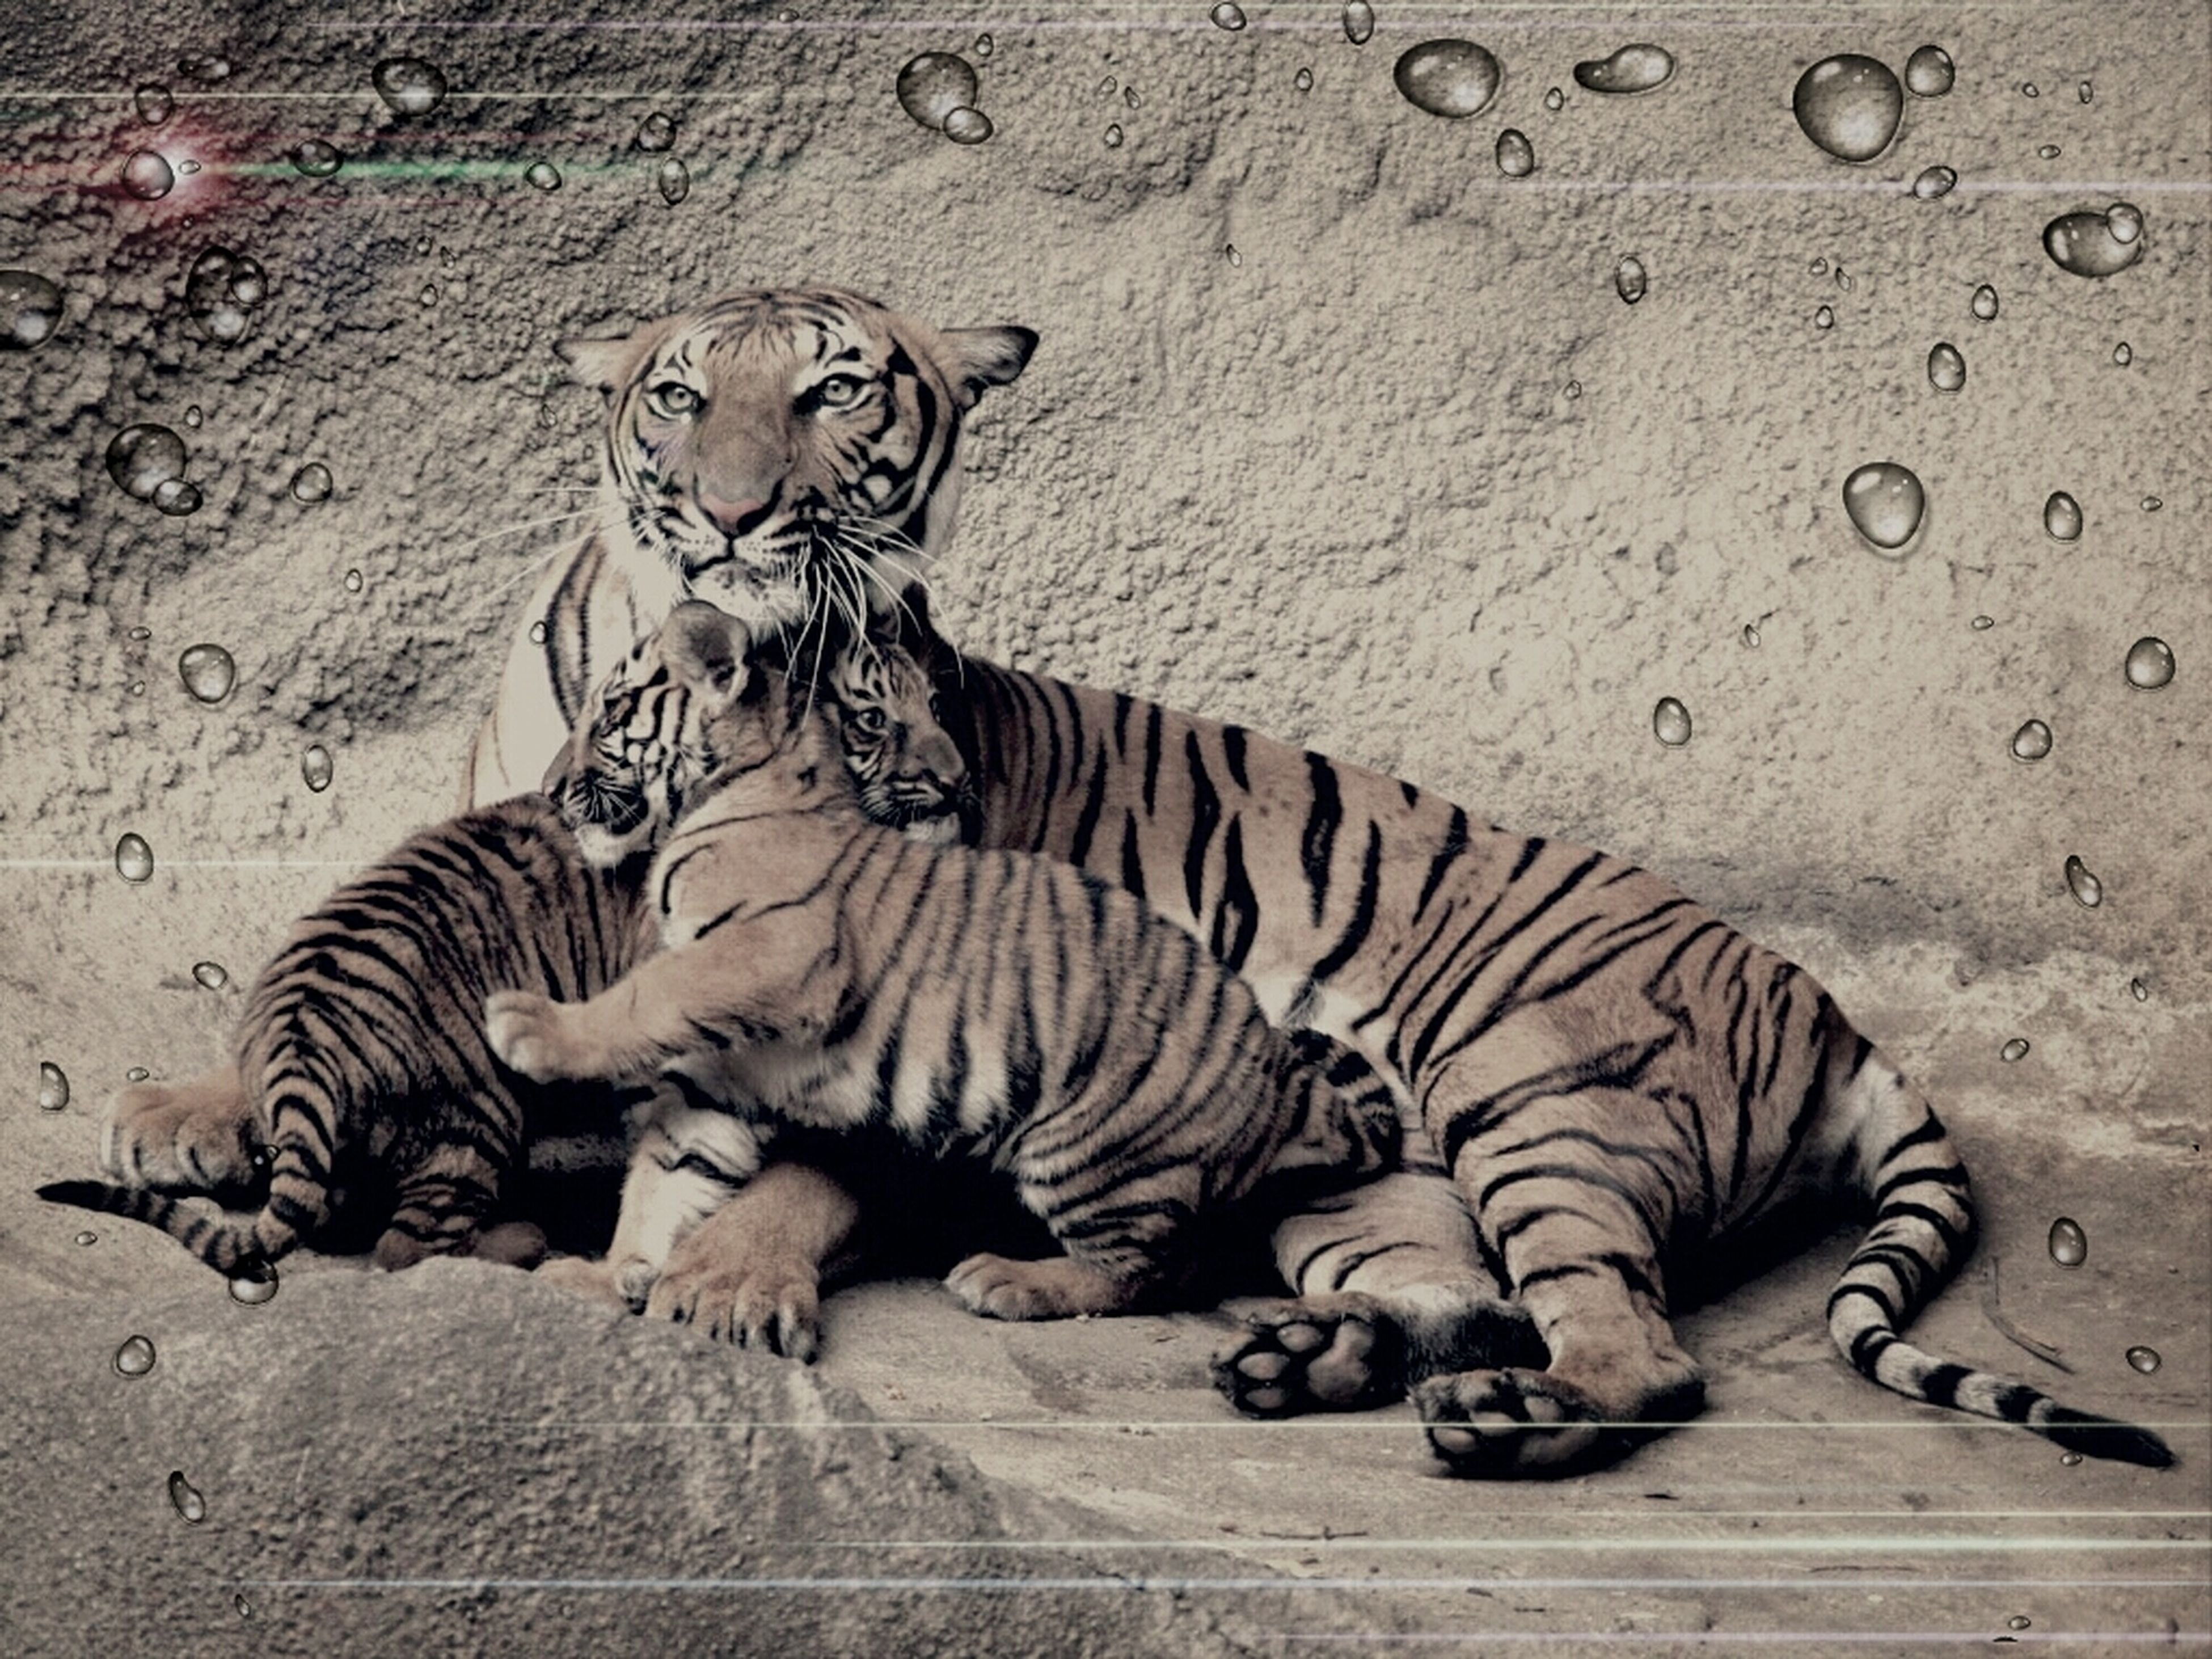 animal themes, animals in the wild, mammal, wildlife, full length, one animal, two animals, animal markings, zebra, striped, togetherness, safari animals, zoo, no people, high angle view, day, outdoors, relaxation, pattern, animal representation